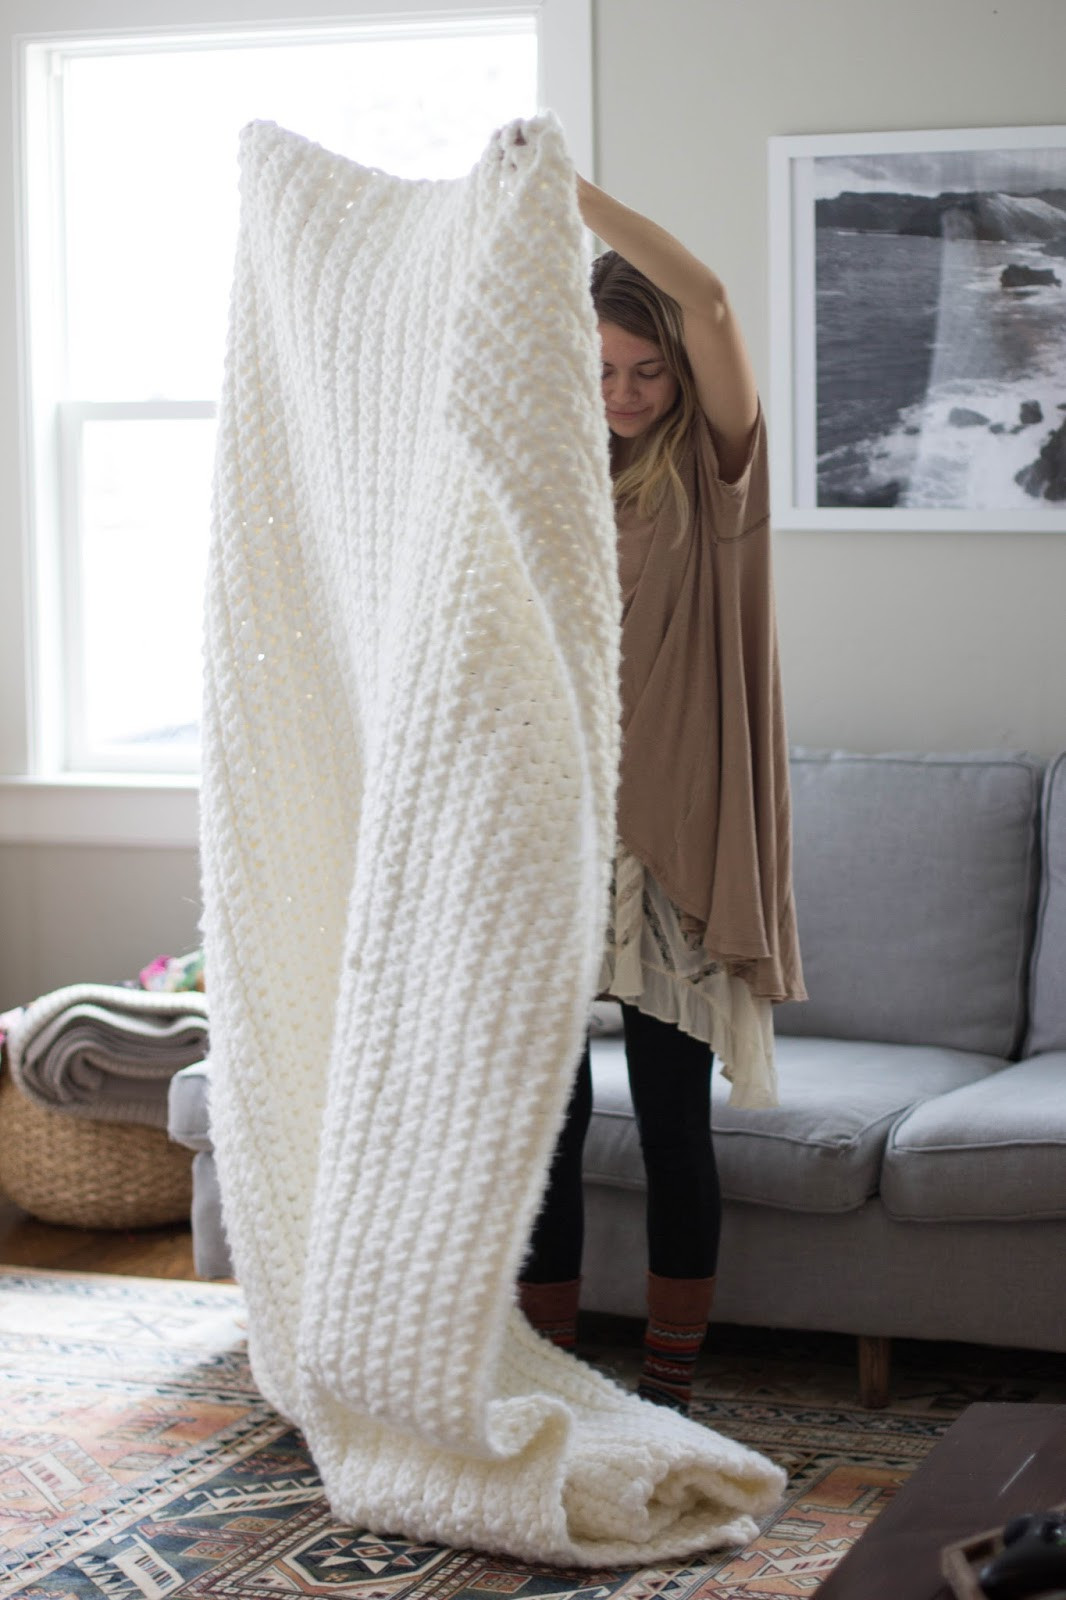 Chunky Knit Blanket Pattern Best Of [free Pattern] Outrageously Cozy Chunky Blanket to Snuggle Of Delightful 41 Pictures Chunky Knit Blanket Pattern